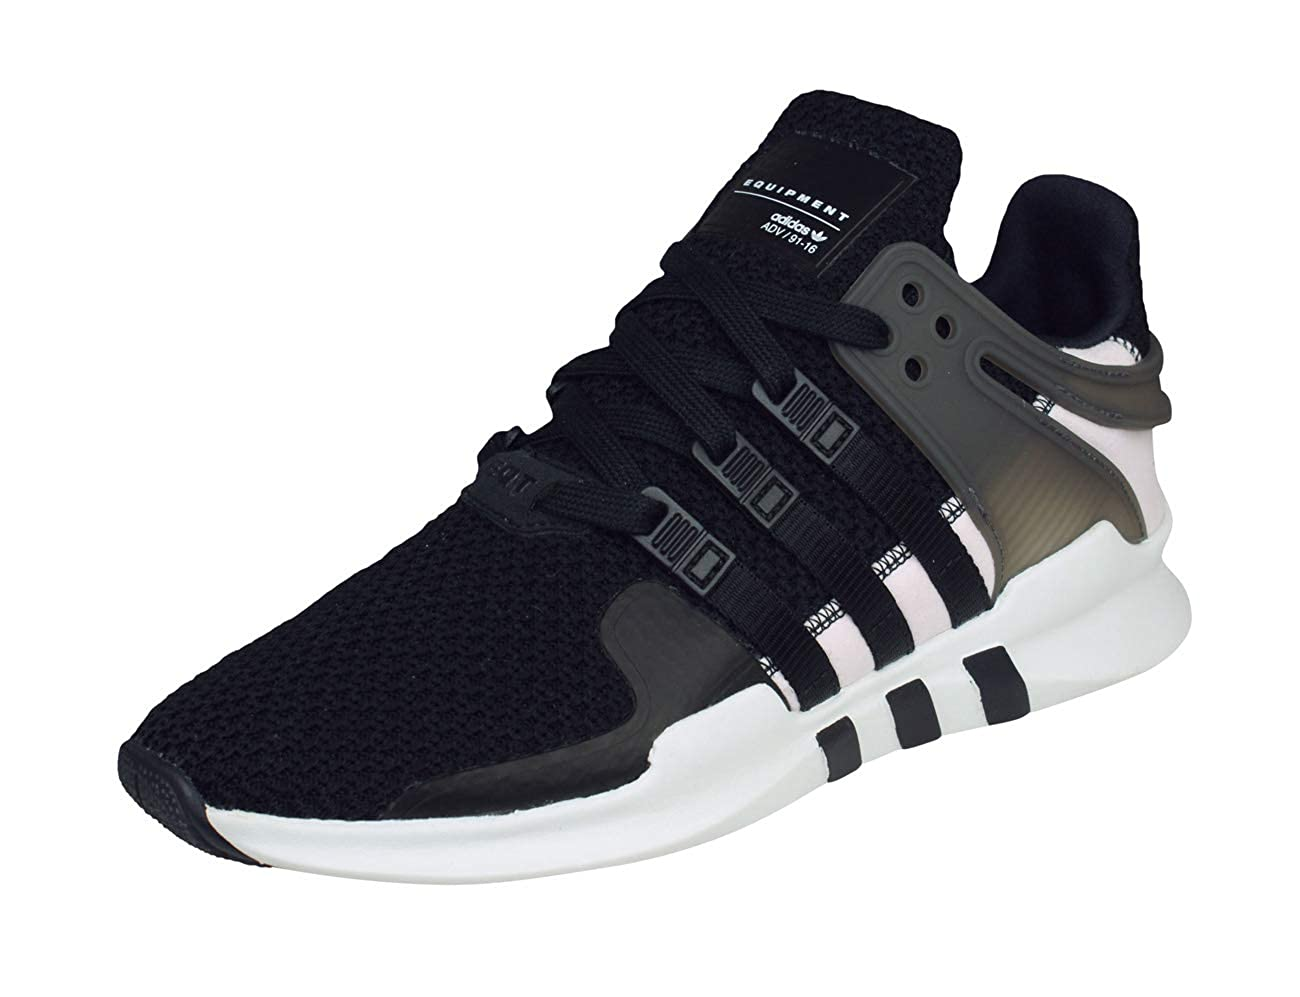 timeless design fdc4a 425ad Adidas Equipment Support ADV W, core blackftwr whiteclear pink  Amazon.co.uk Shoes  Bags